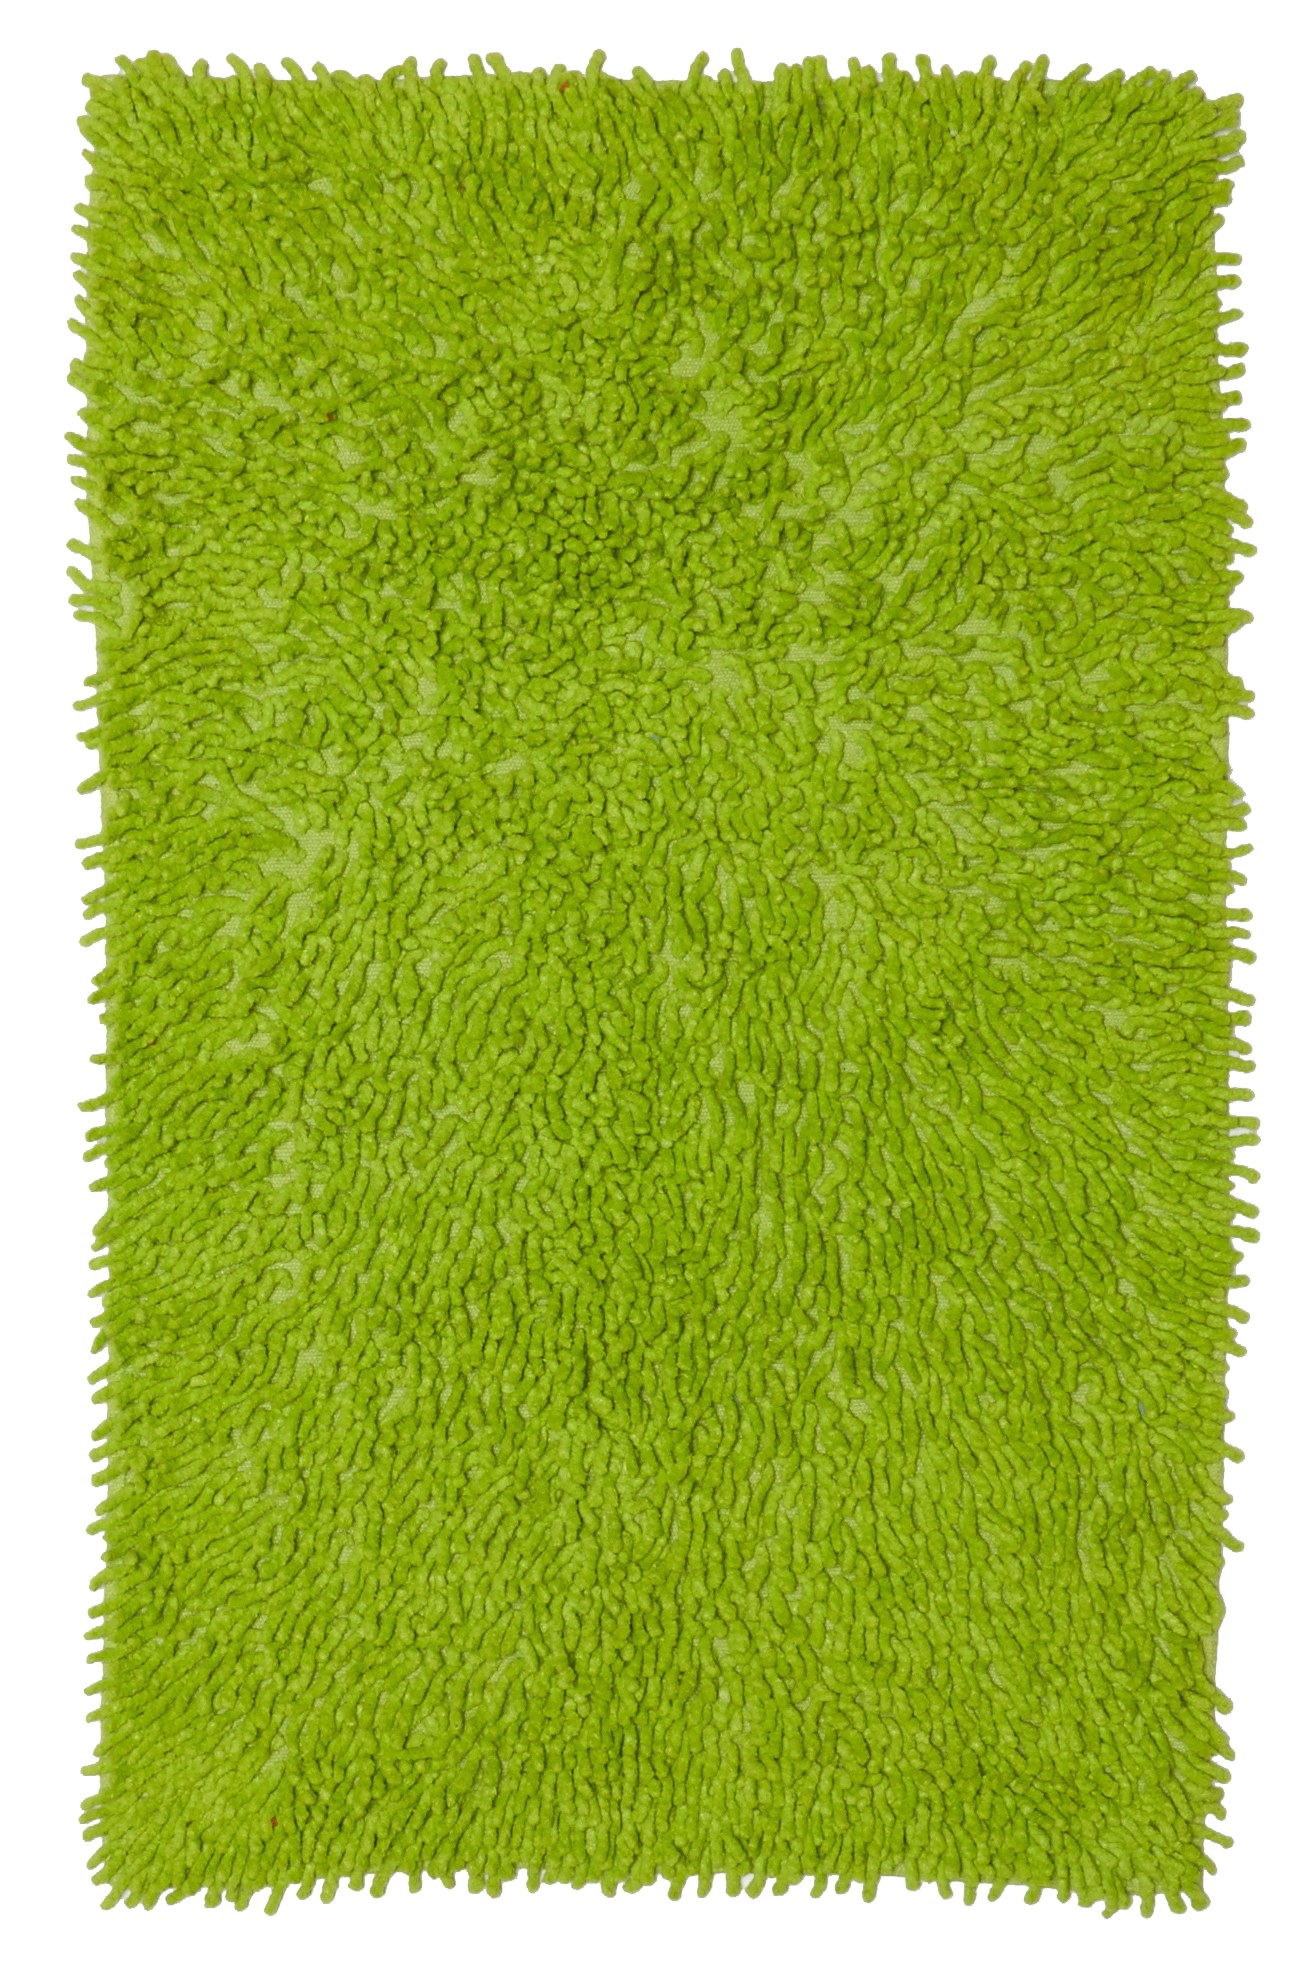 les tapis tapis de salle de bains spaghetti fluo vert. Black Bedroom Furniture Sets. Home Design Ideas